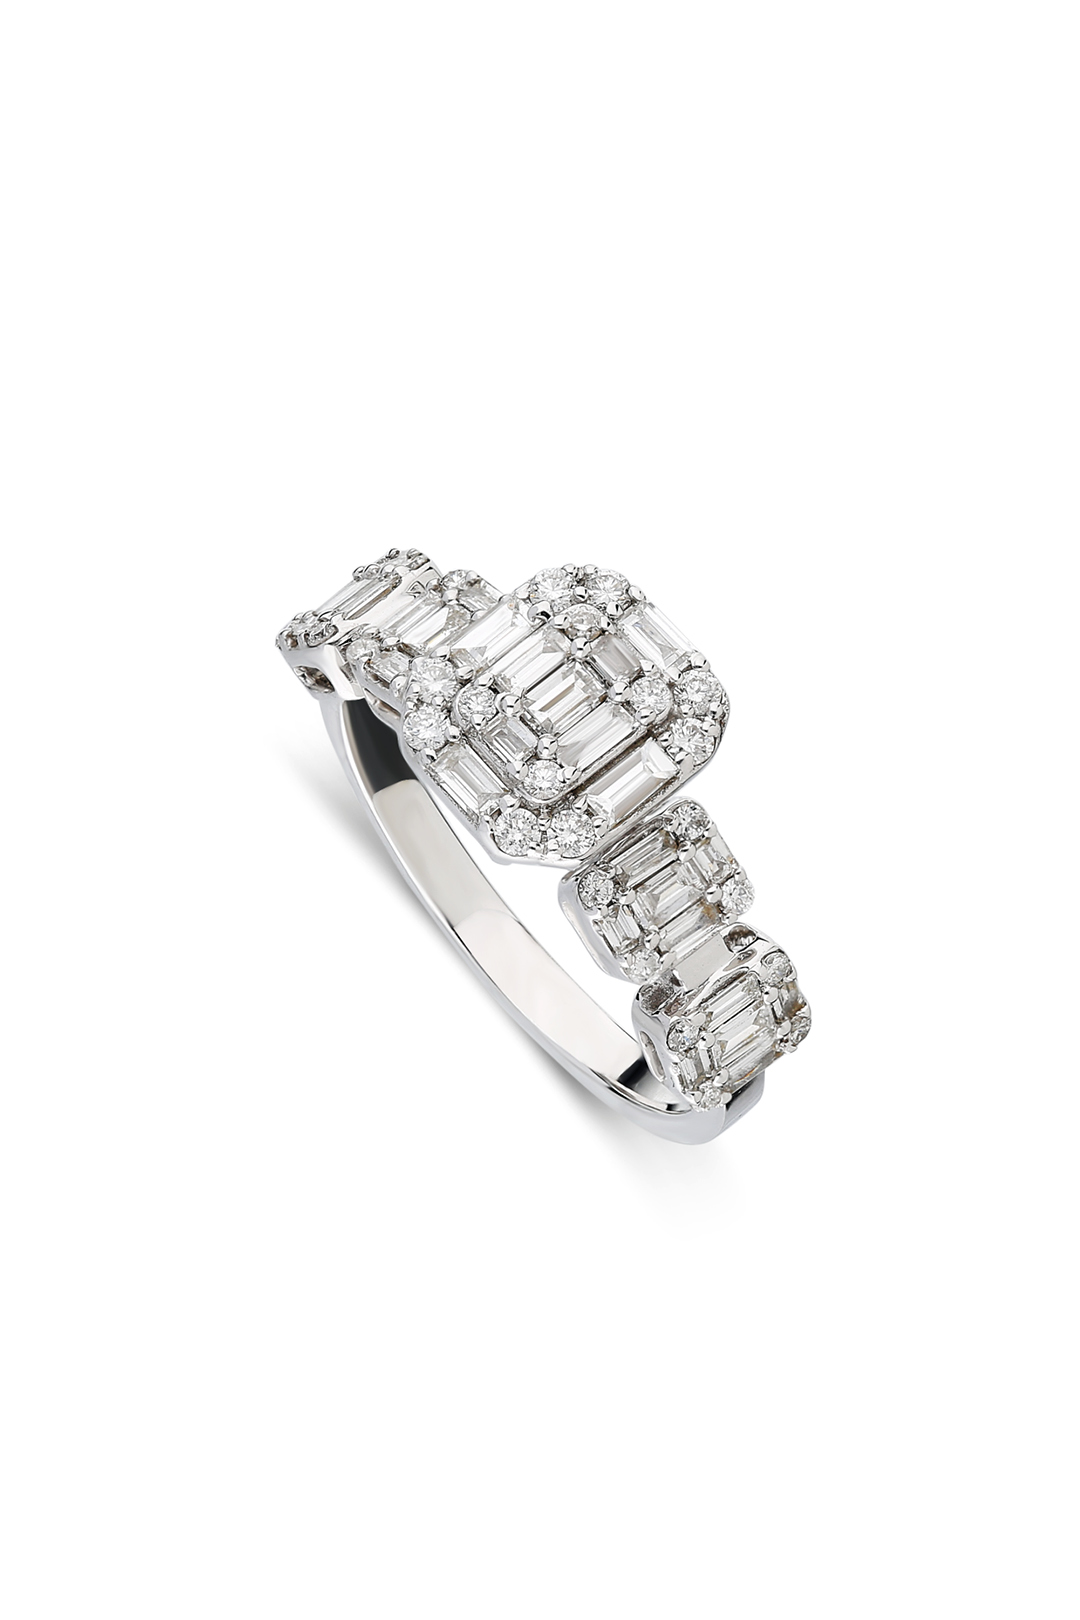 FIVE BAGUETTES DIAMOND RING